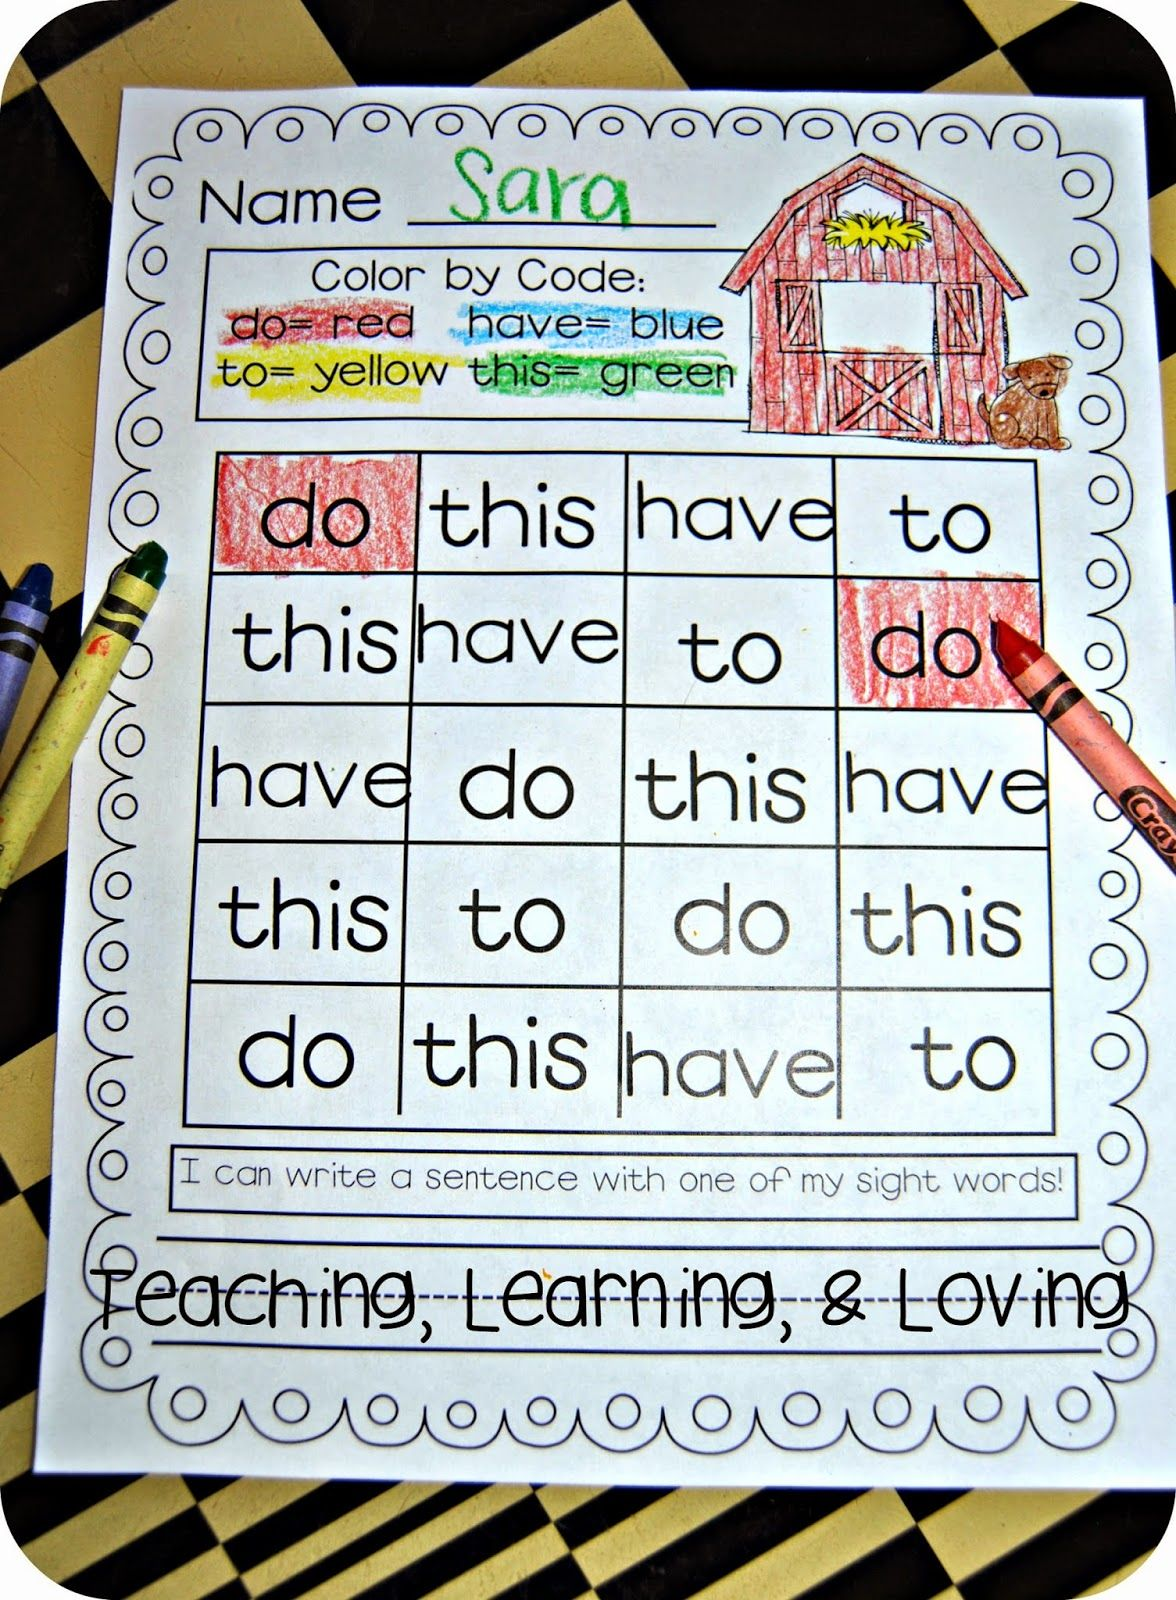 25 Ways to Teach Sight Words! | Creative Classroom Ideas | Pinterest ...